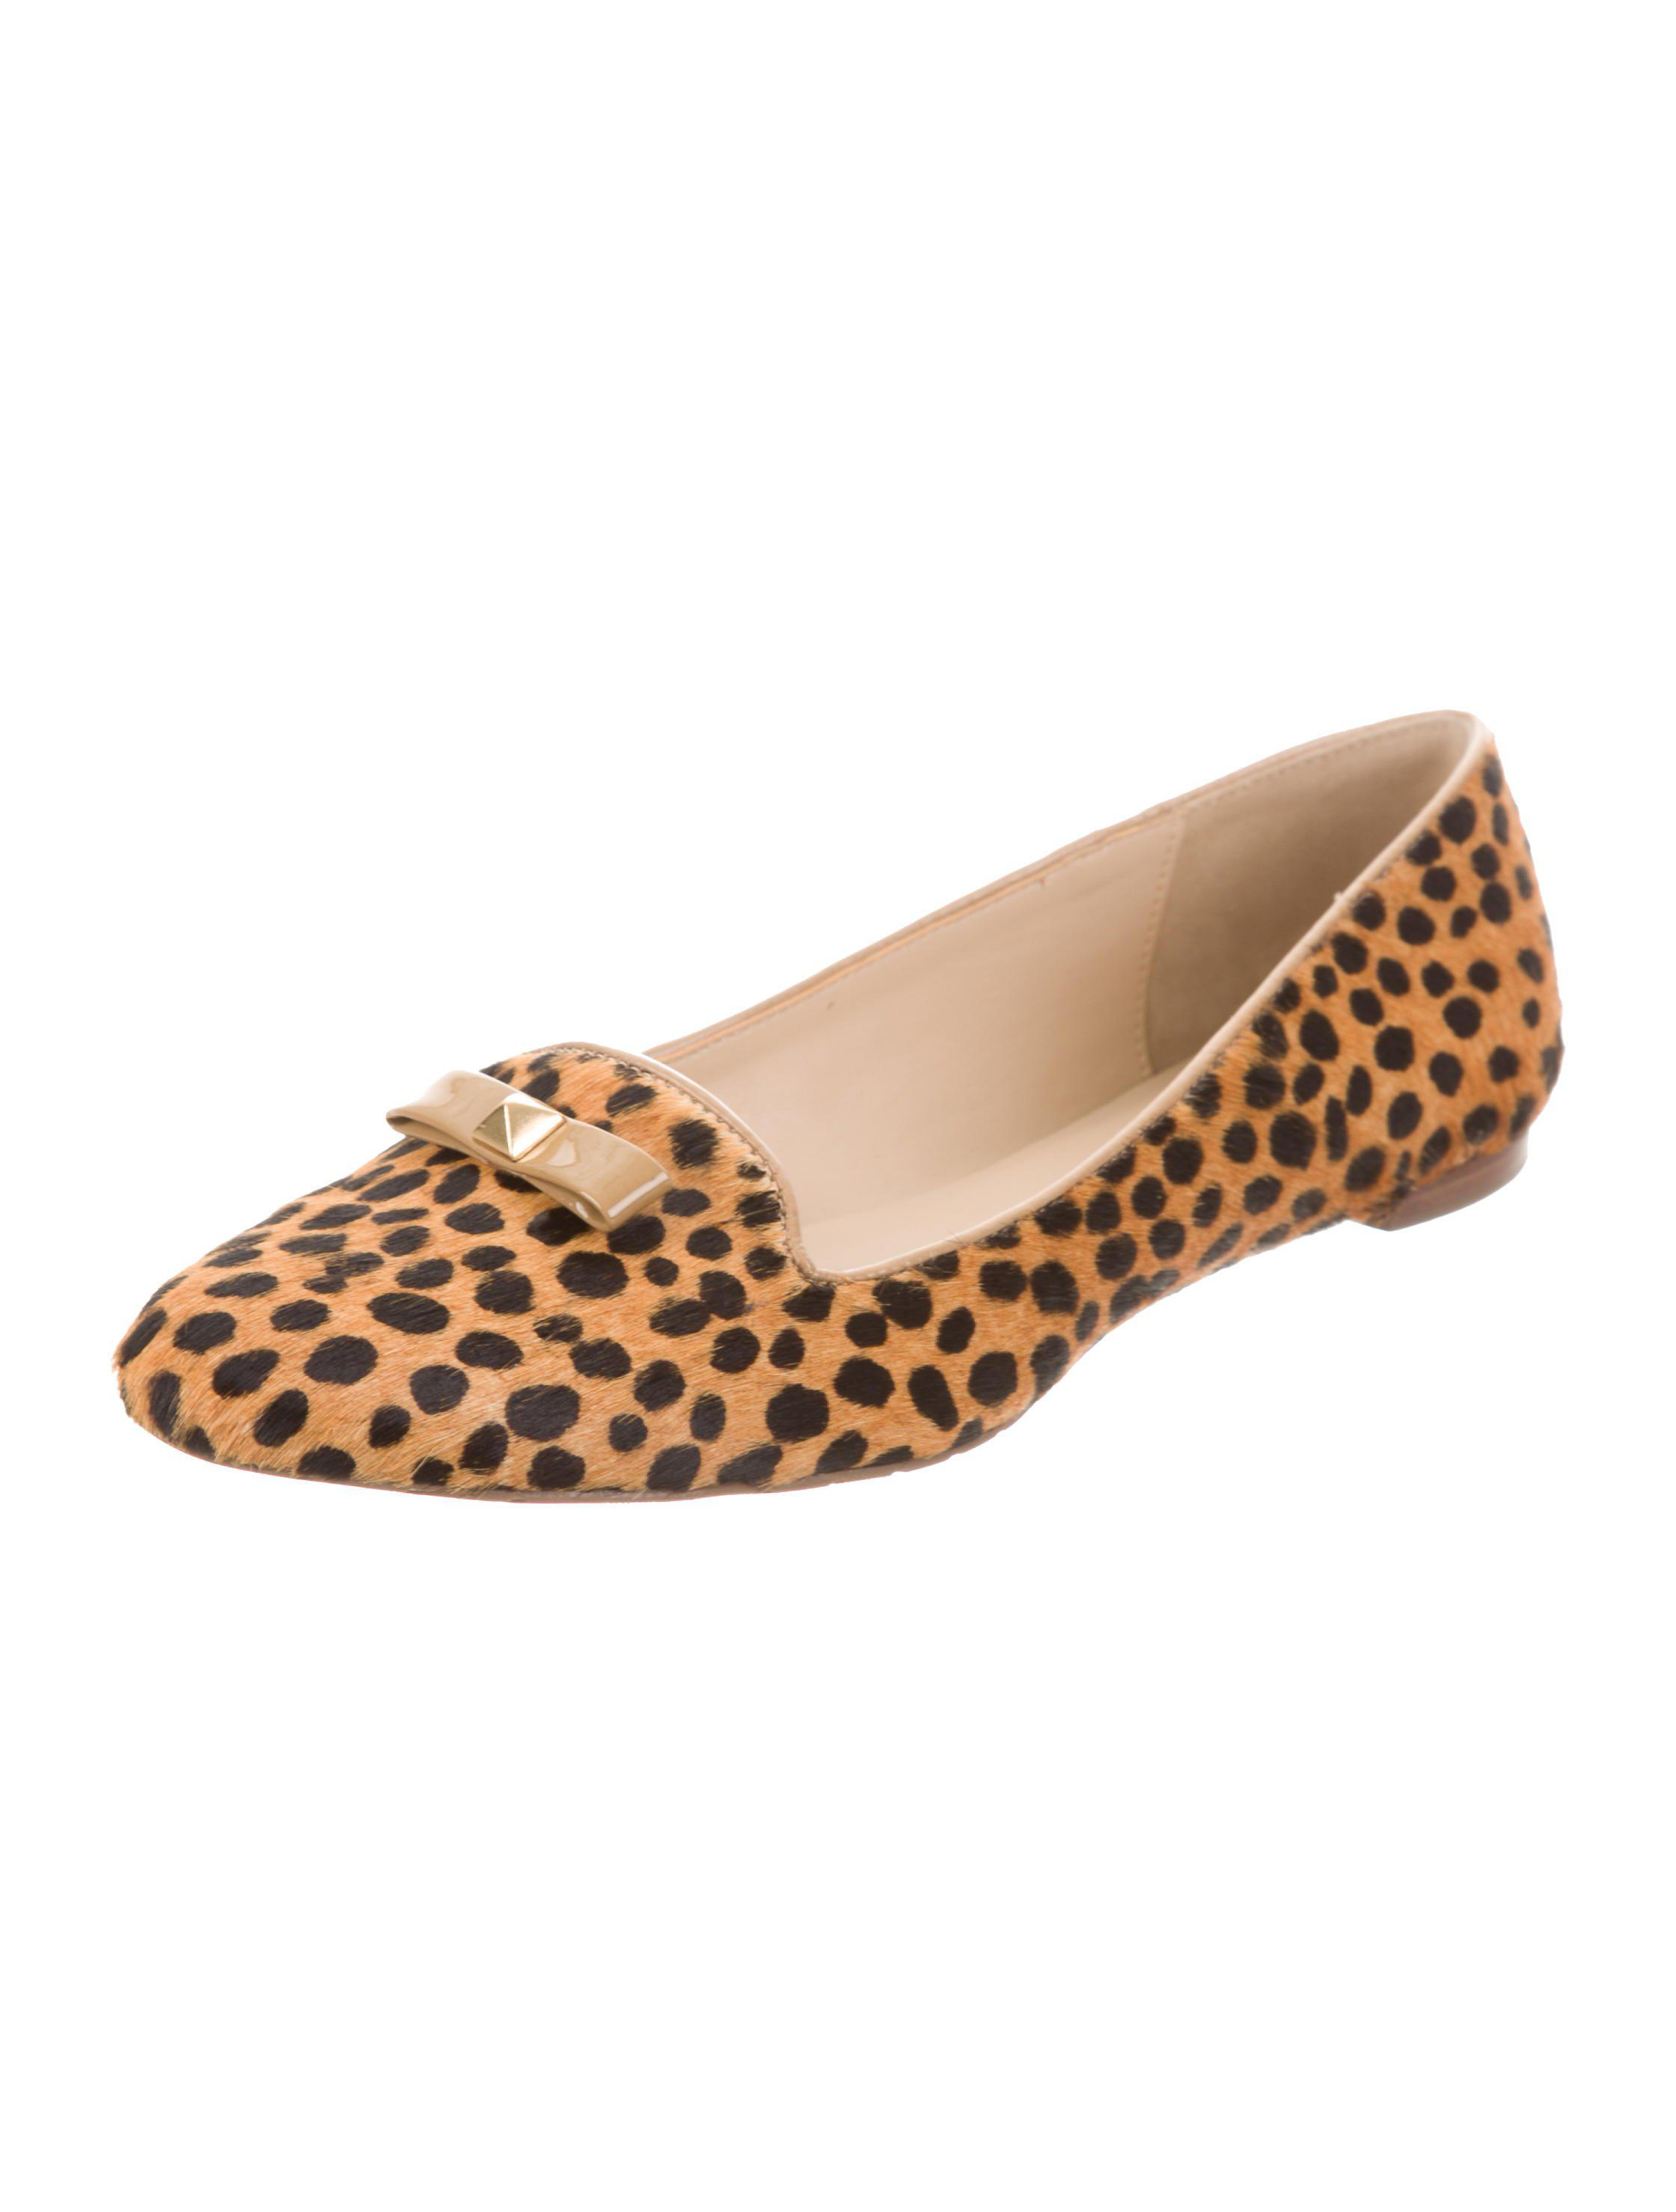 Kate Spade New York Treat Ponyhair Flats sale release dates store cheap online sale pay with visa find great fashion Style sale online WhFbW